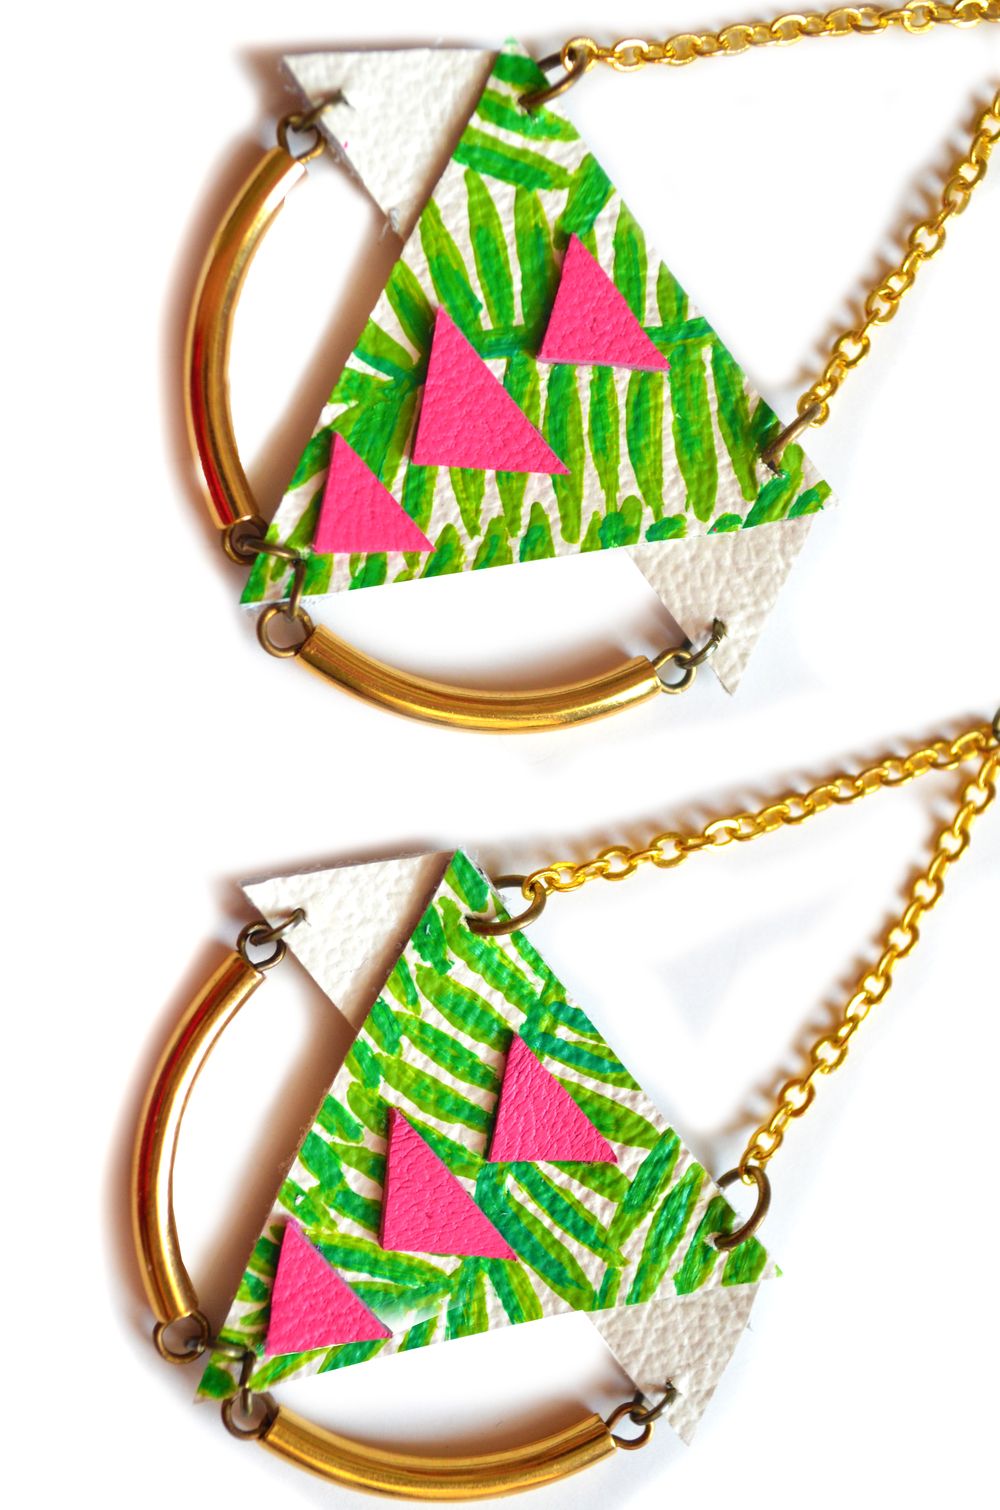 Brass Geometric Earrings, Palm Tree Earrings, Gold Dangle Earrings, Neon Pink and Green Triangle Earrings, Tribal Statement Earrings 4.jpg